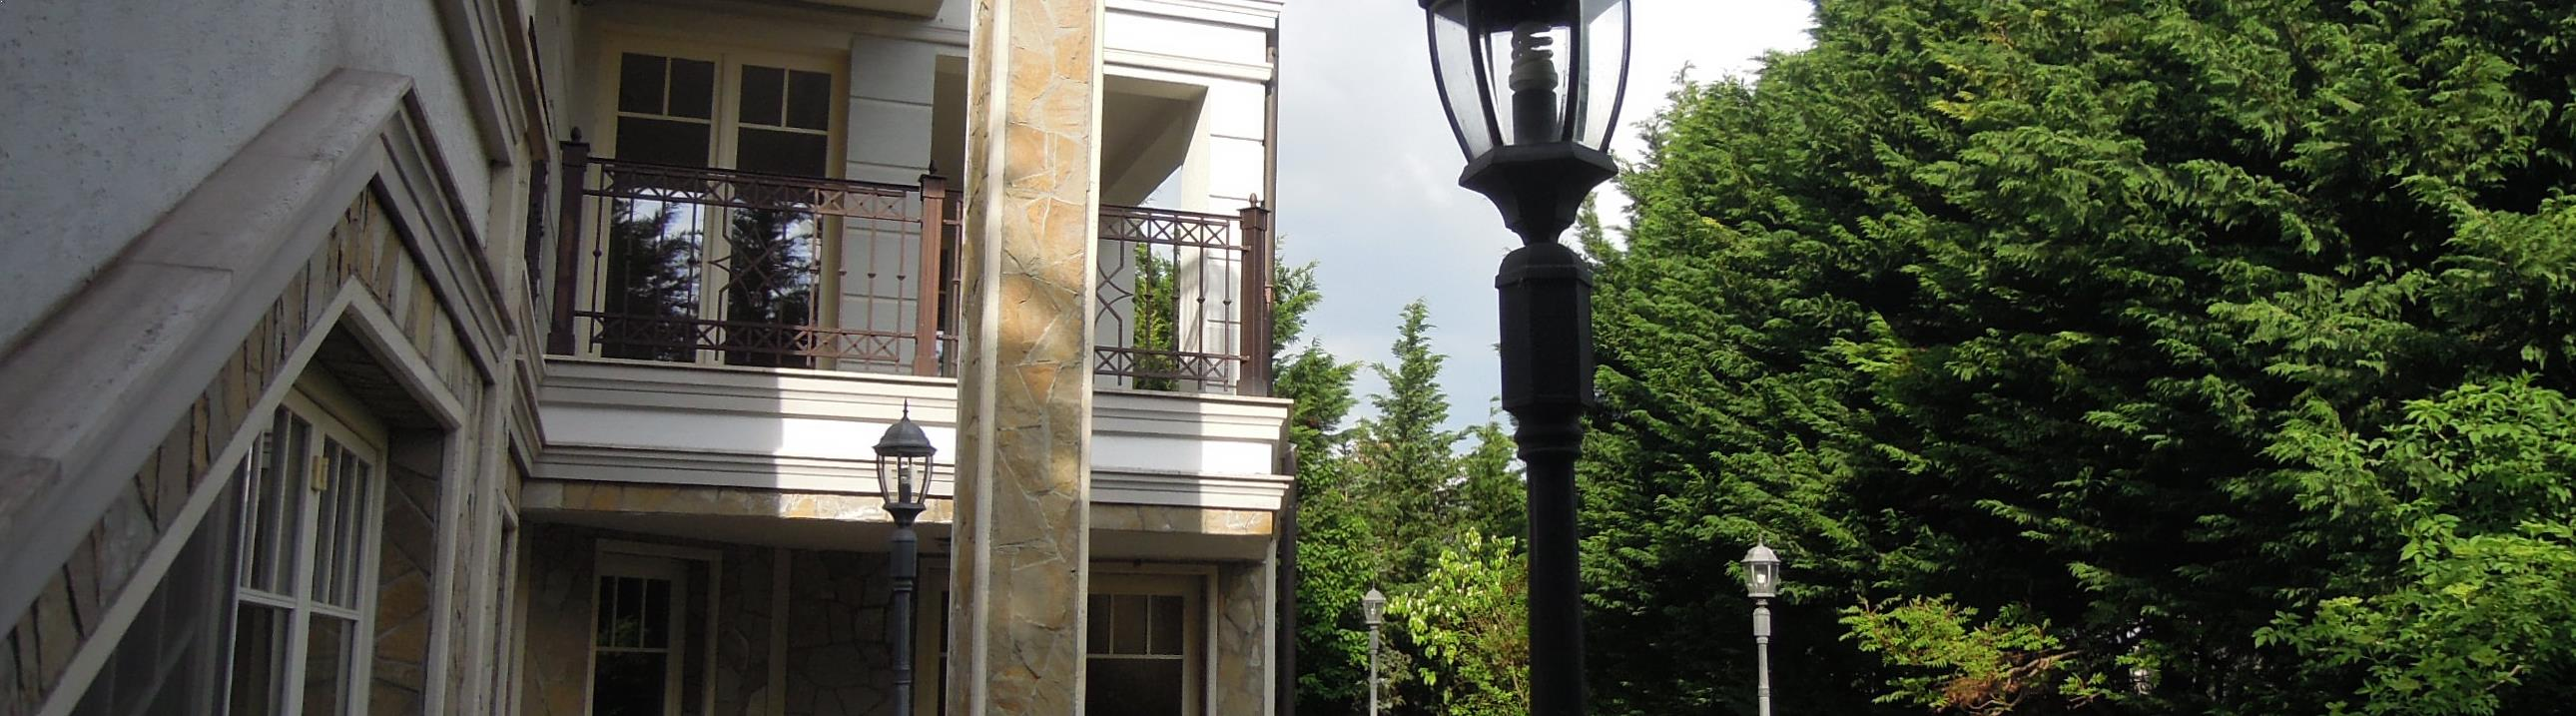 villa for sale with 7 rooms, swimming pool, service flat, lift-Budapest II district